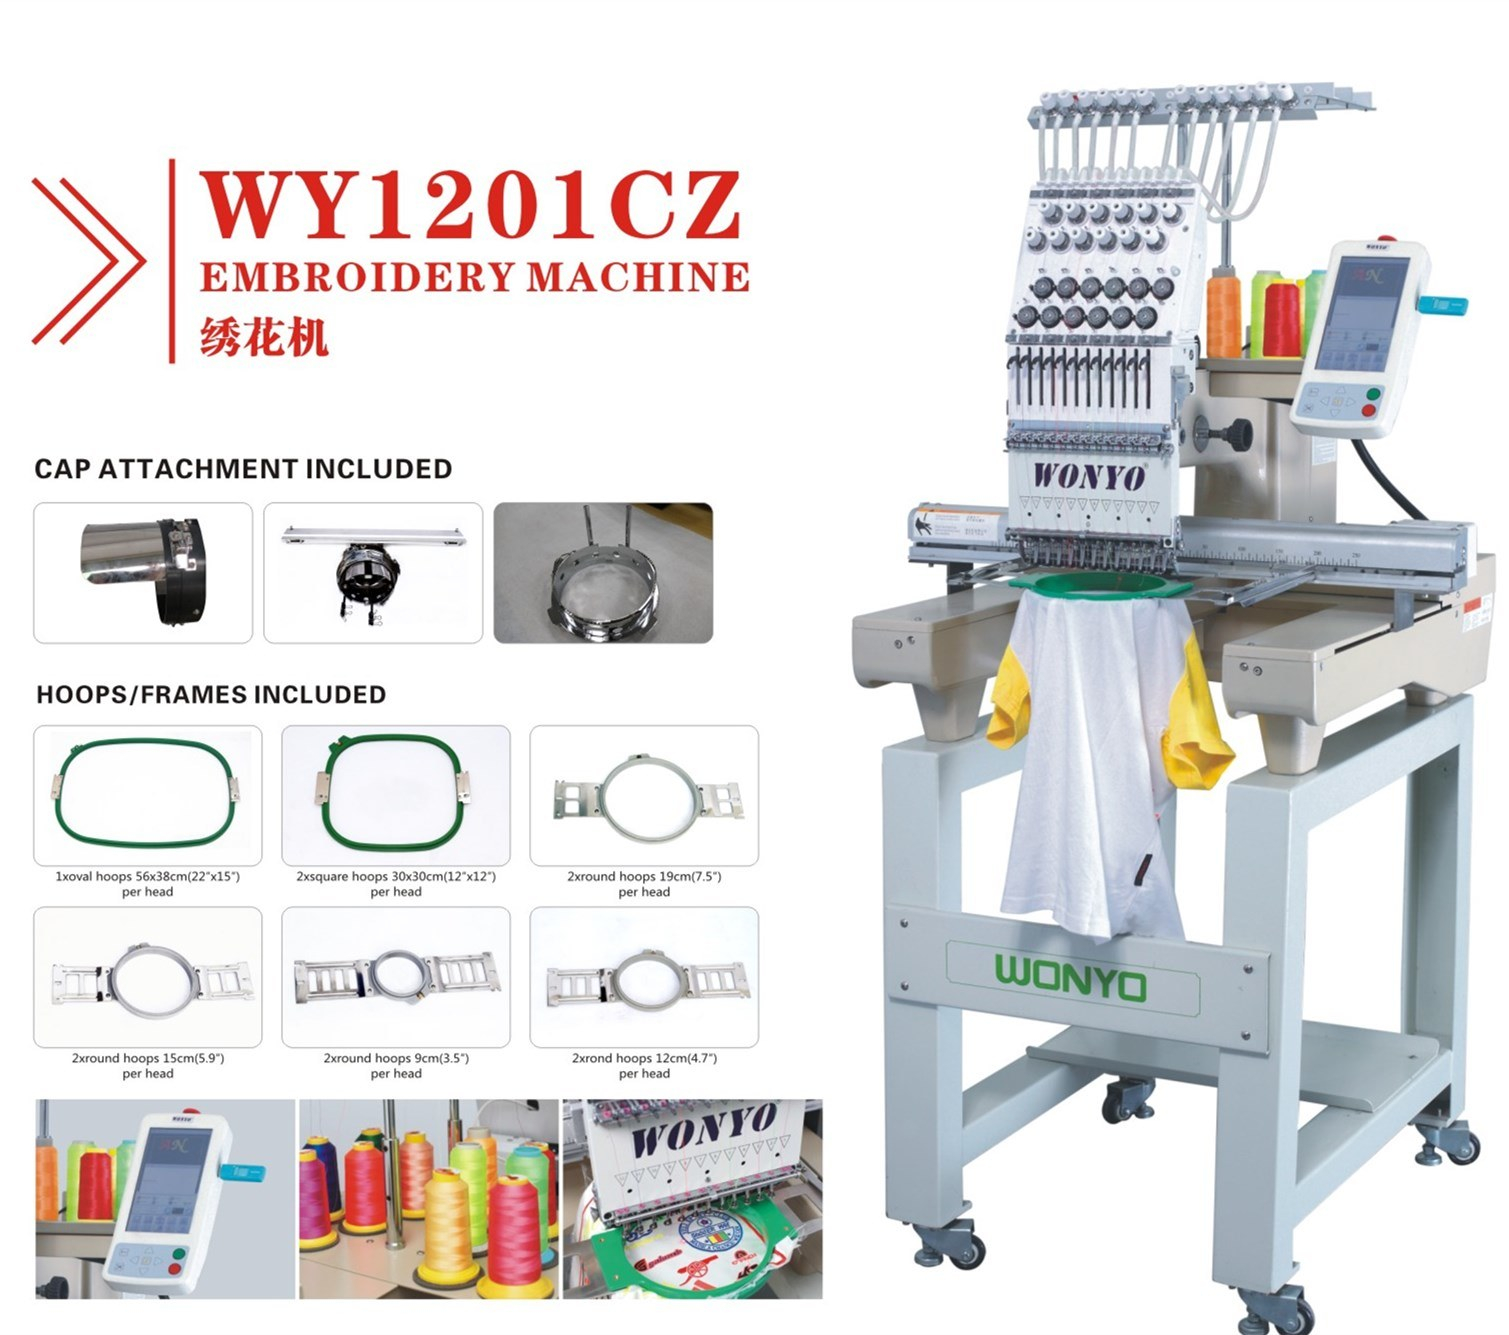 Patterns For Embroidery Machine Hot Item New Tajima Designs Embroidery Machine With 1215 Needles For Cap